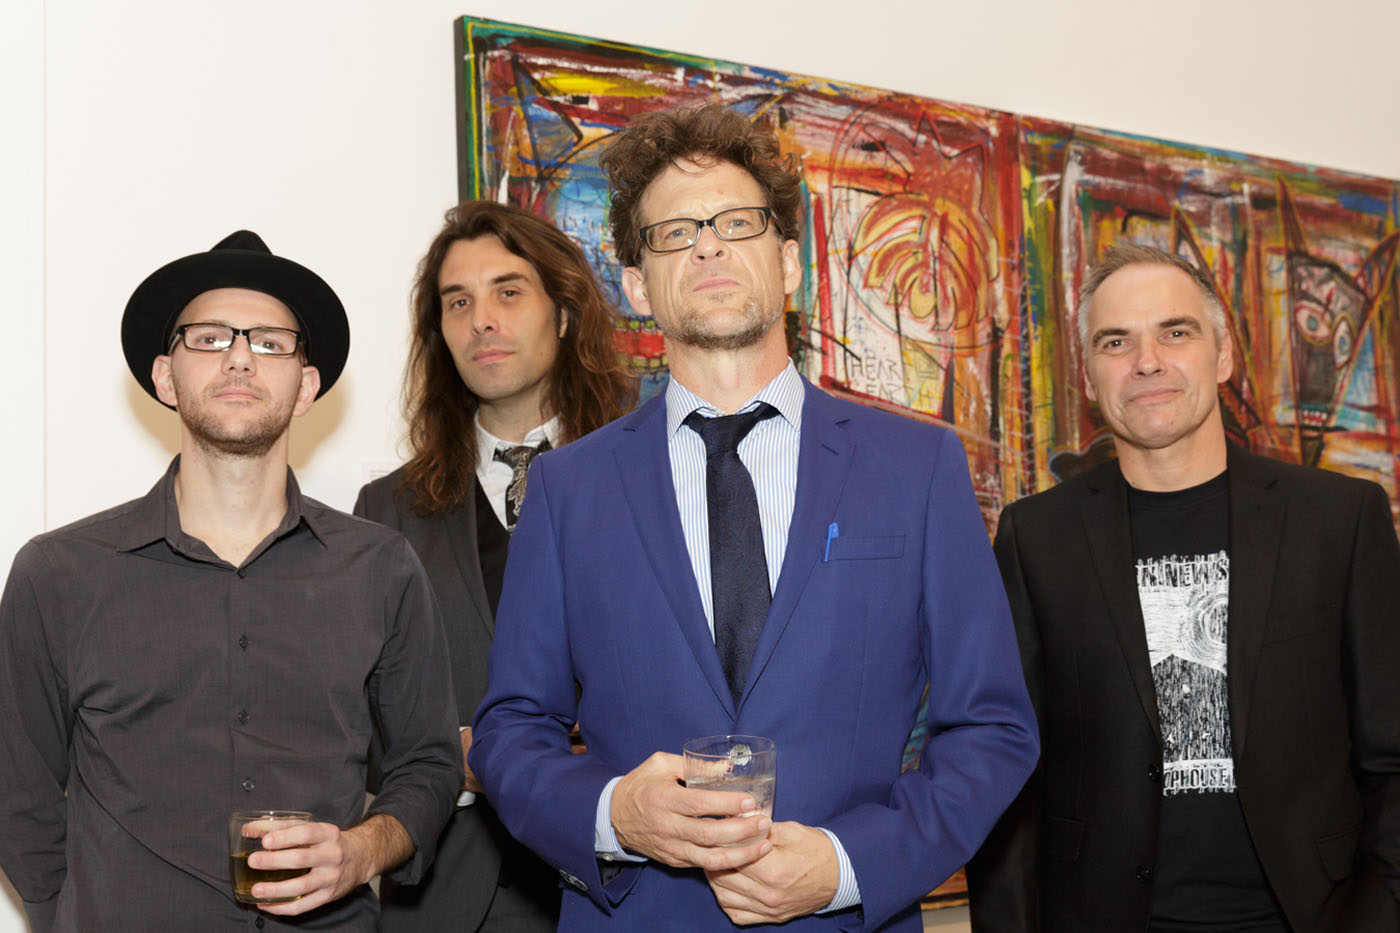 Jason Newsted and band - RaWk exhibition opening - Cultural Council of Palm Beach County